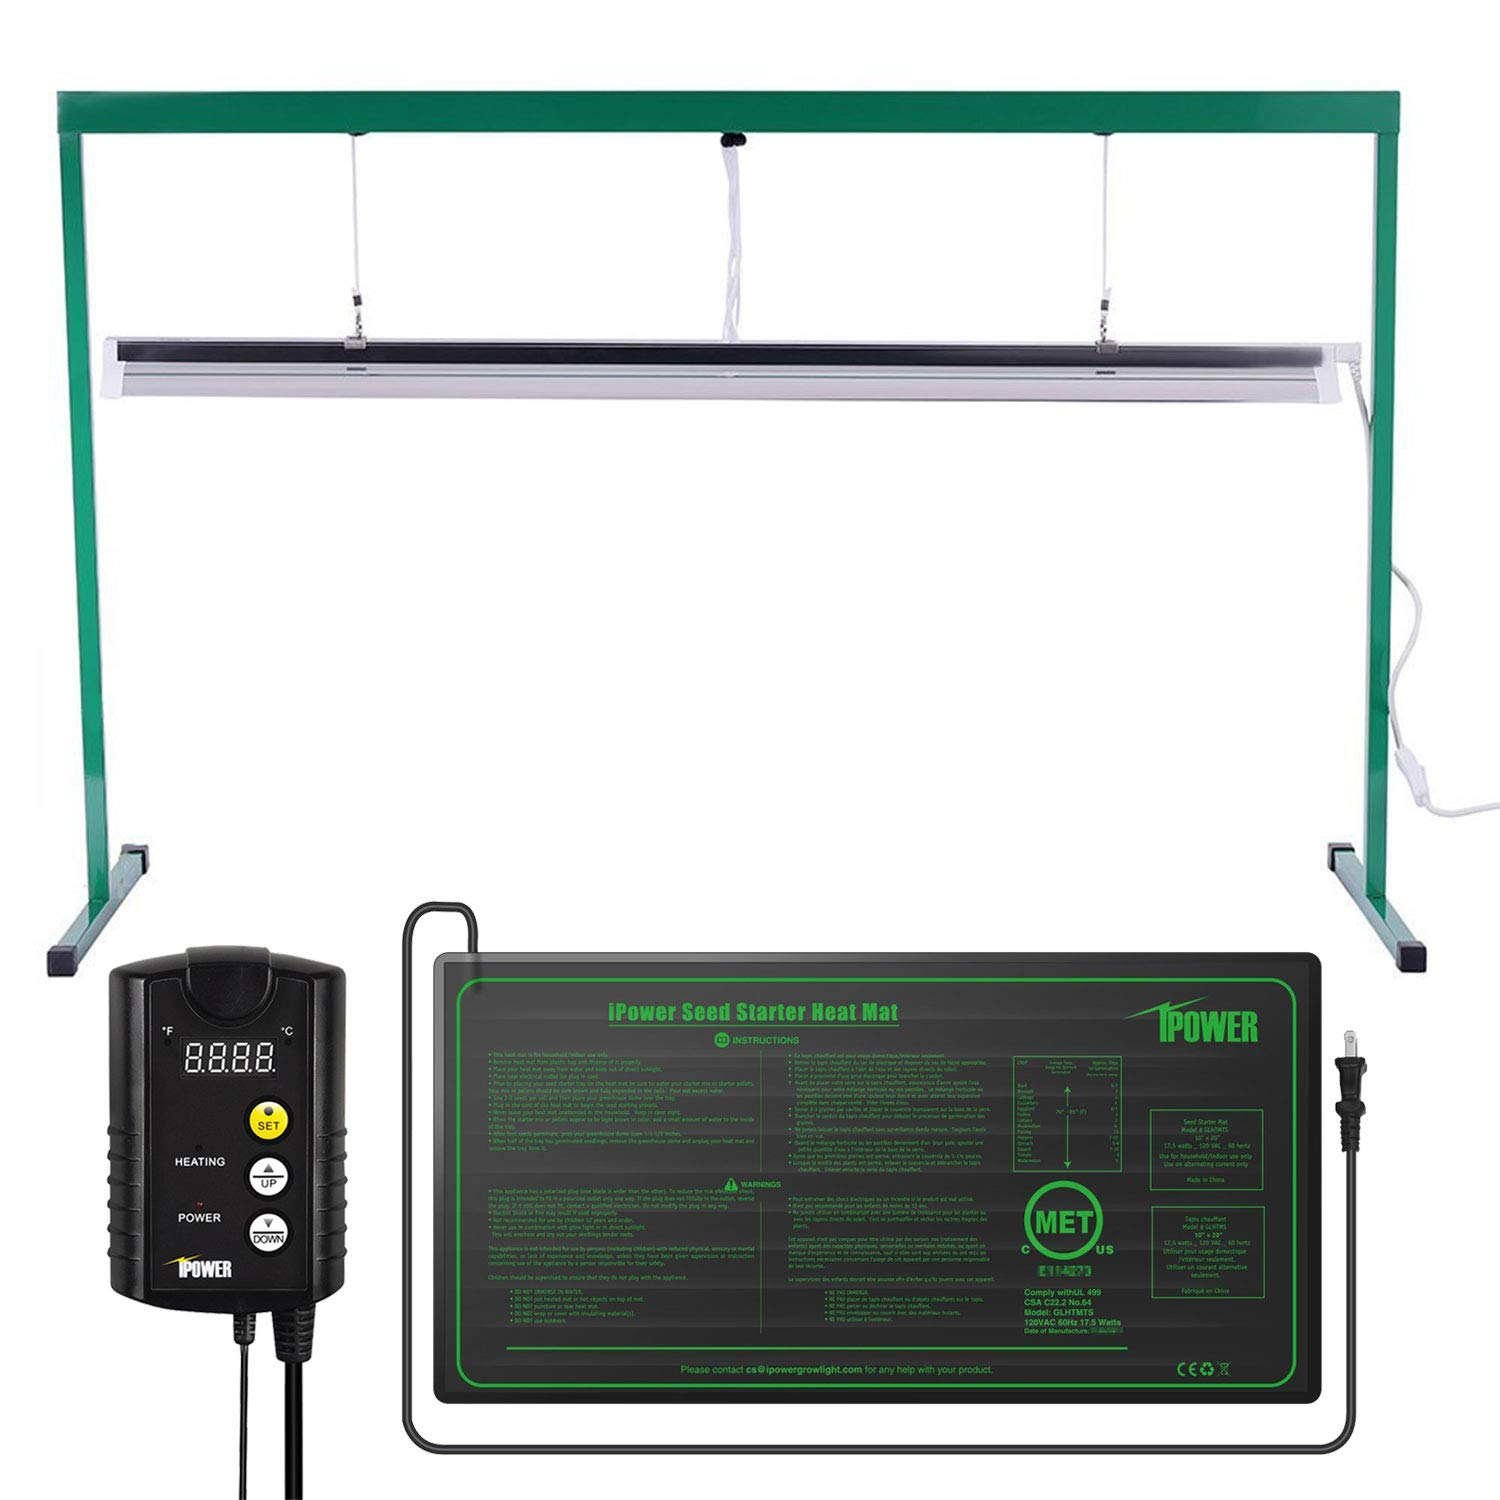 iPower 54W 4 Feet T5 Fluorescent Grow Light Stand Rack (6400k) and 10'' x 20.5'' Seedling Heat Mat and 40-108 Degrees Fahrenheit Digital Heat Mat Thermostat Controller Combo Set for Seed Germination